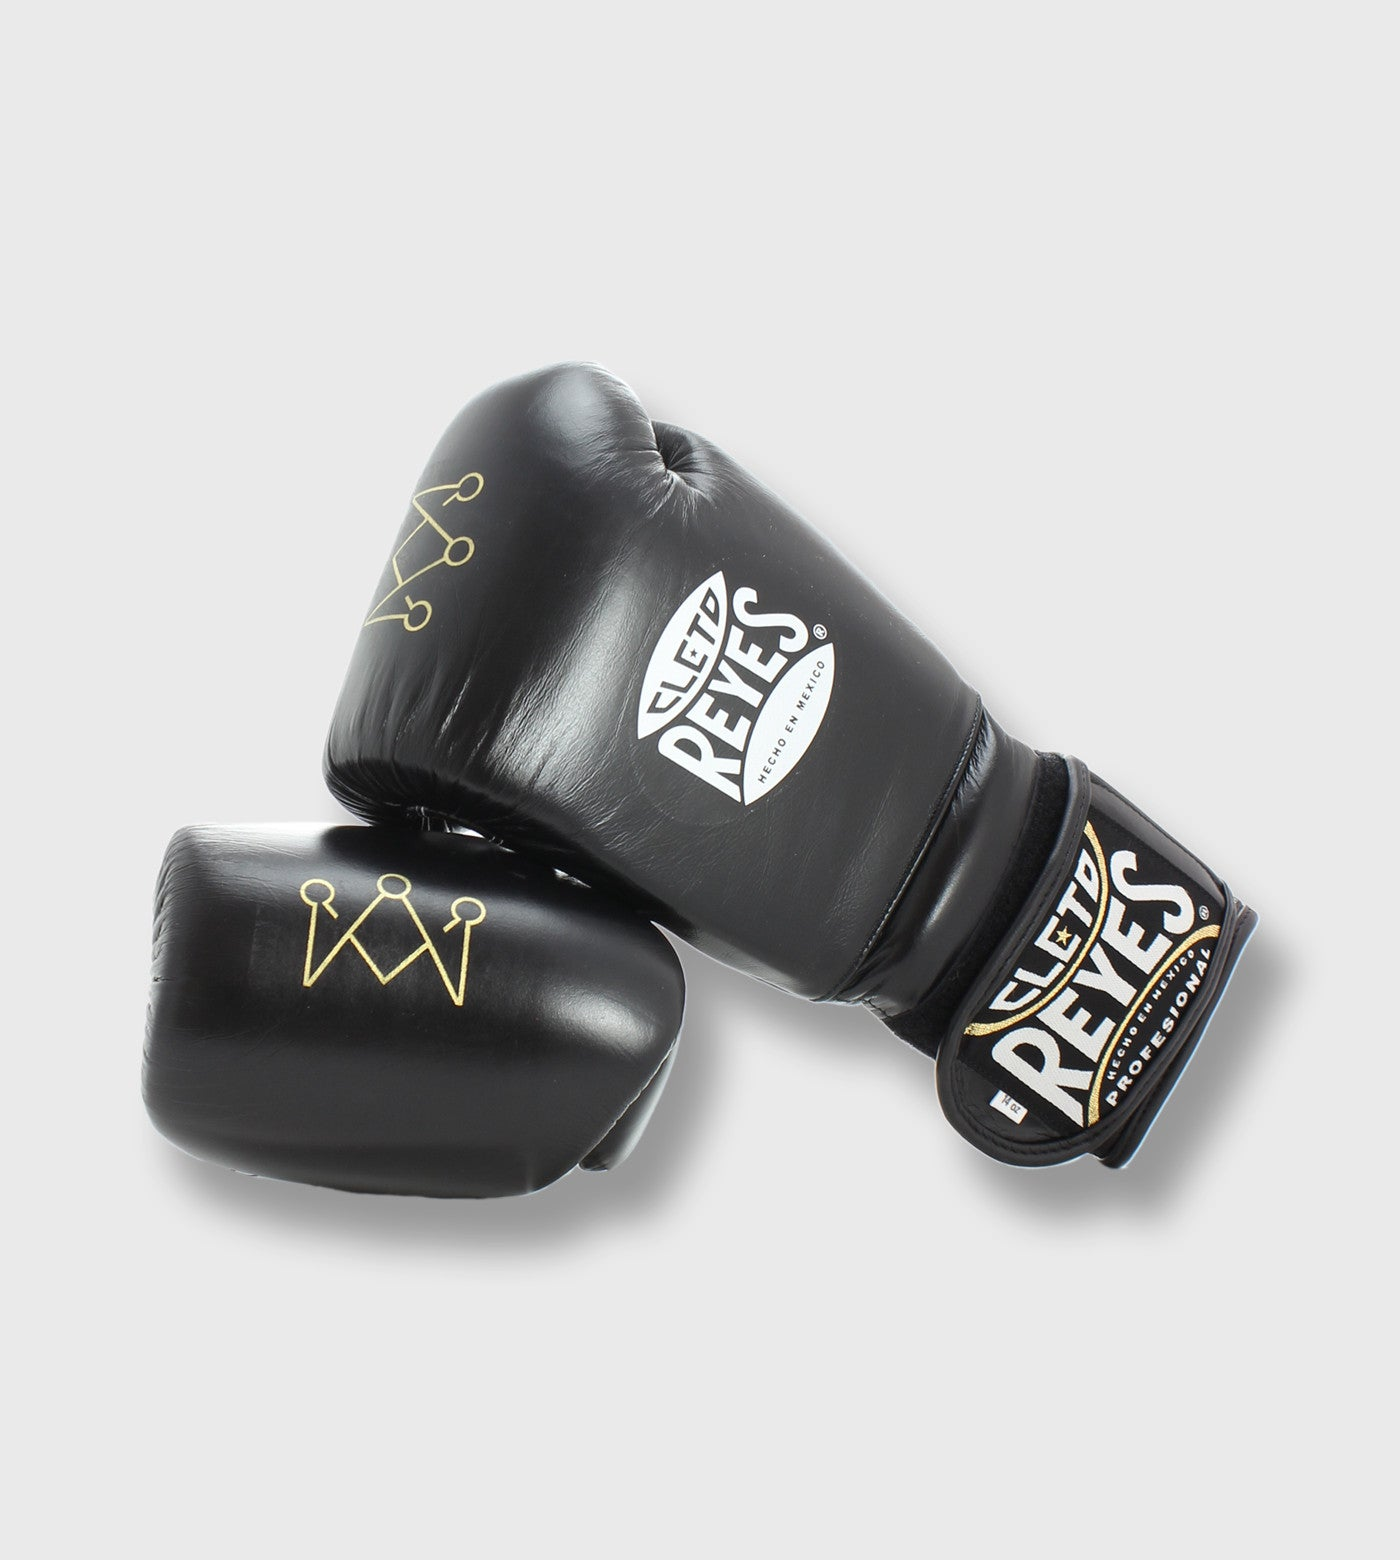 Cleto Reyes Boxing Gloves / Symbol